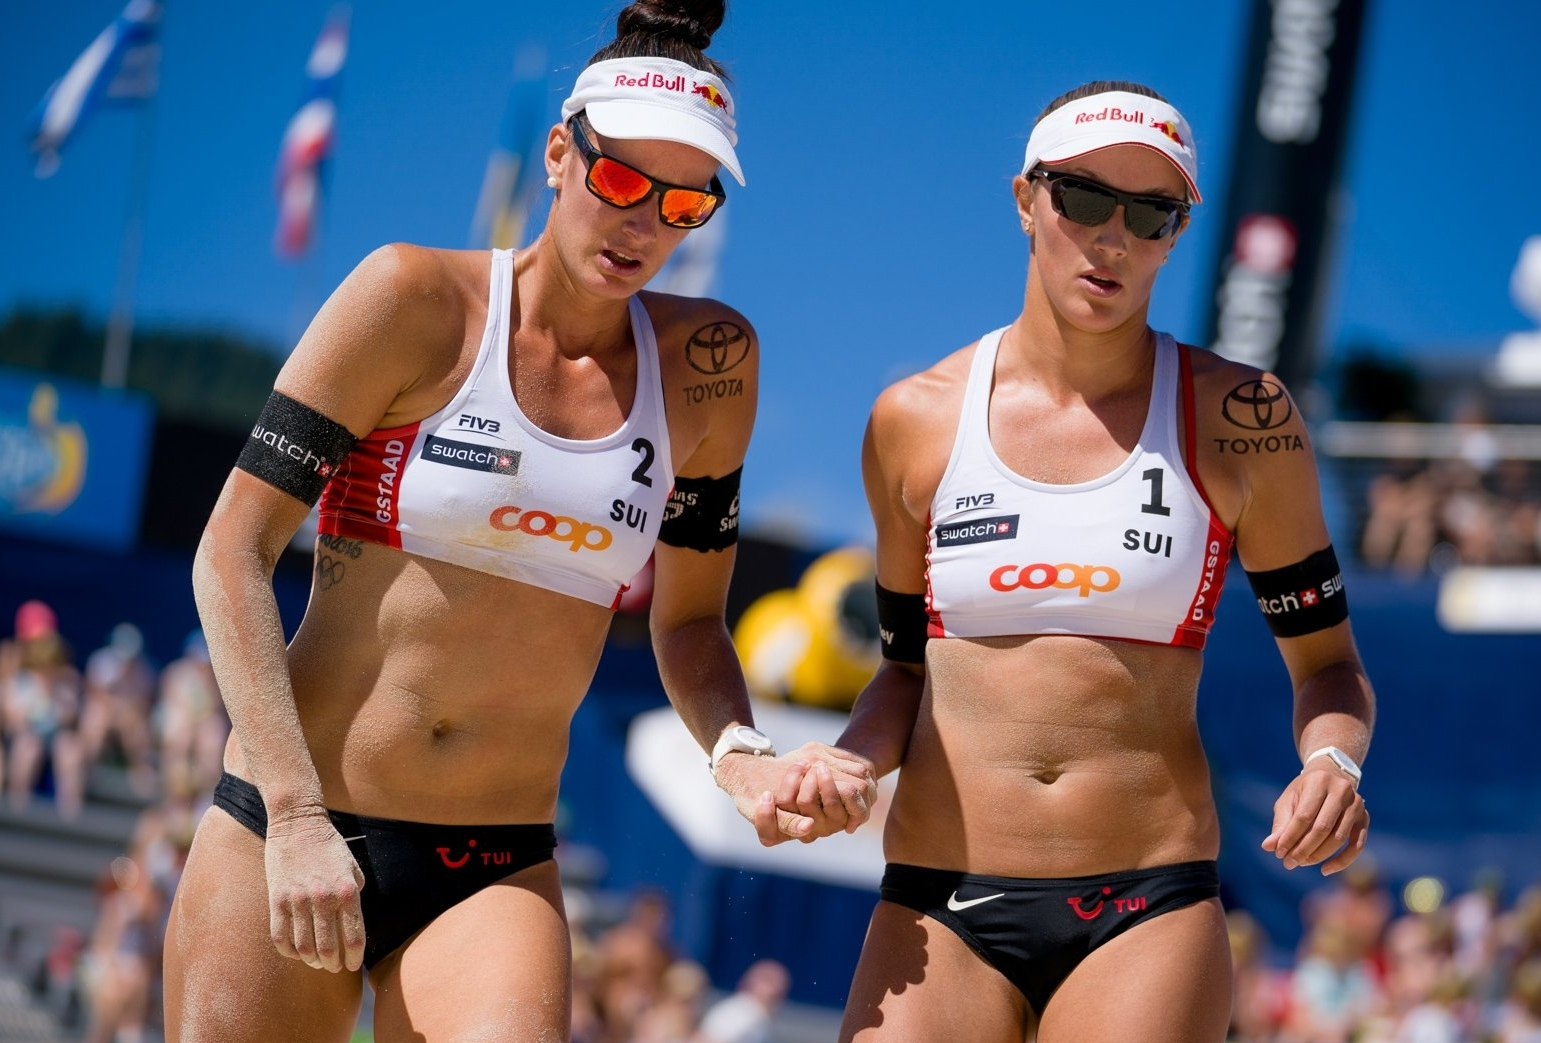 Joana and Anouk had their run in the Gstaad Major cut short by the injury